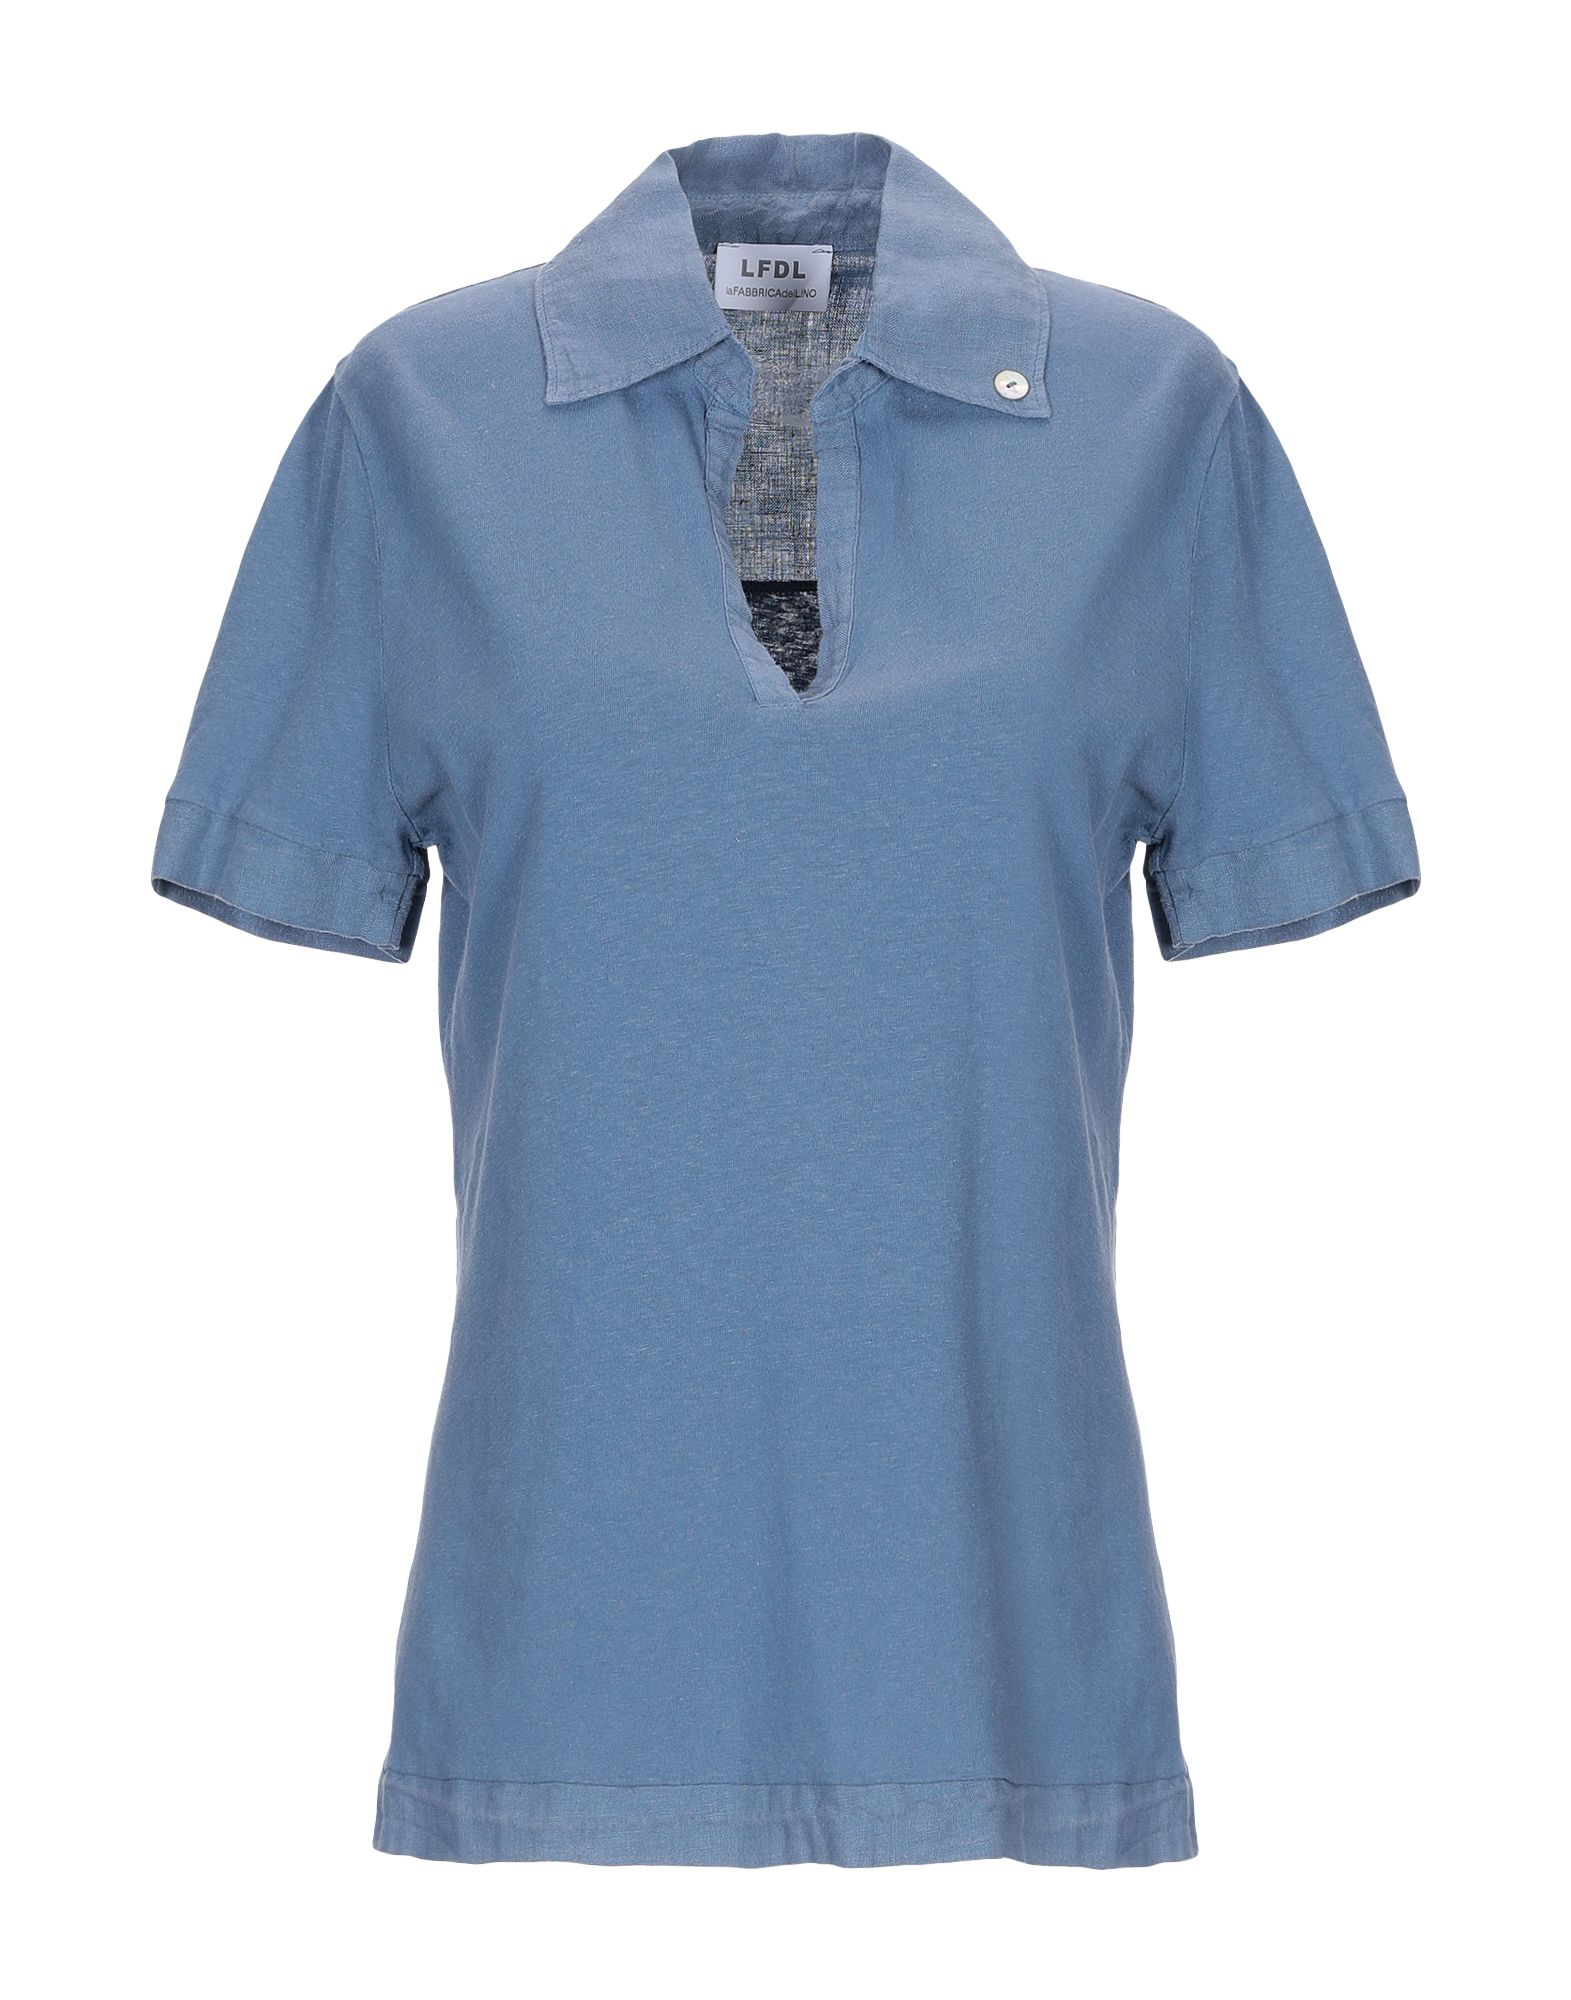 Polo Lfdl damen - 12288736FD